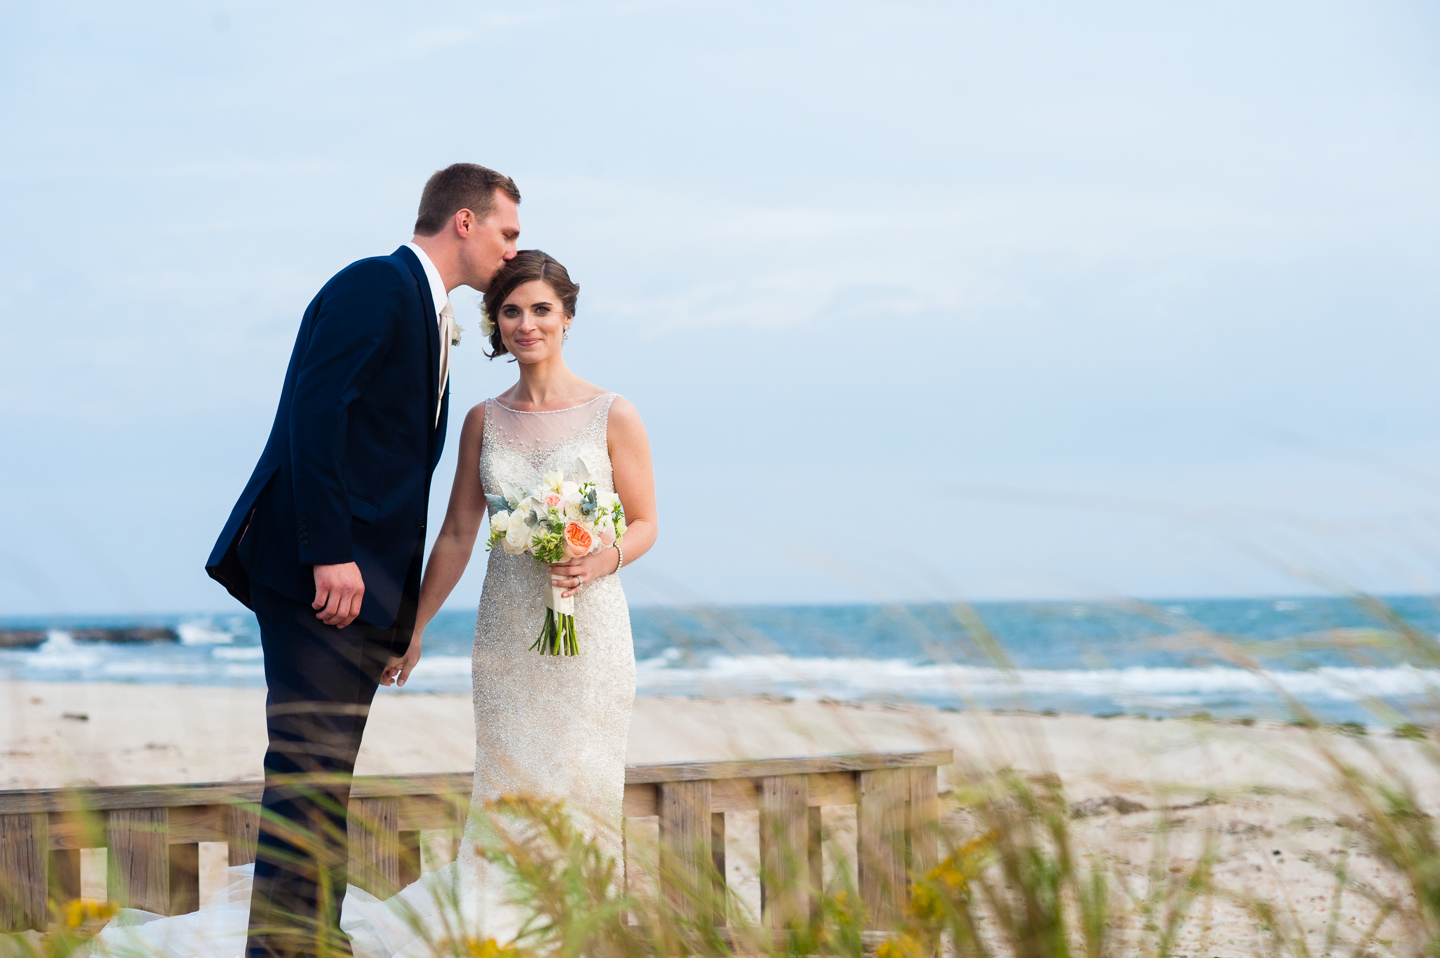 groom gives his gorgeous bride a kiss on the head in the dune grass by the beach